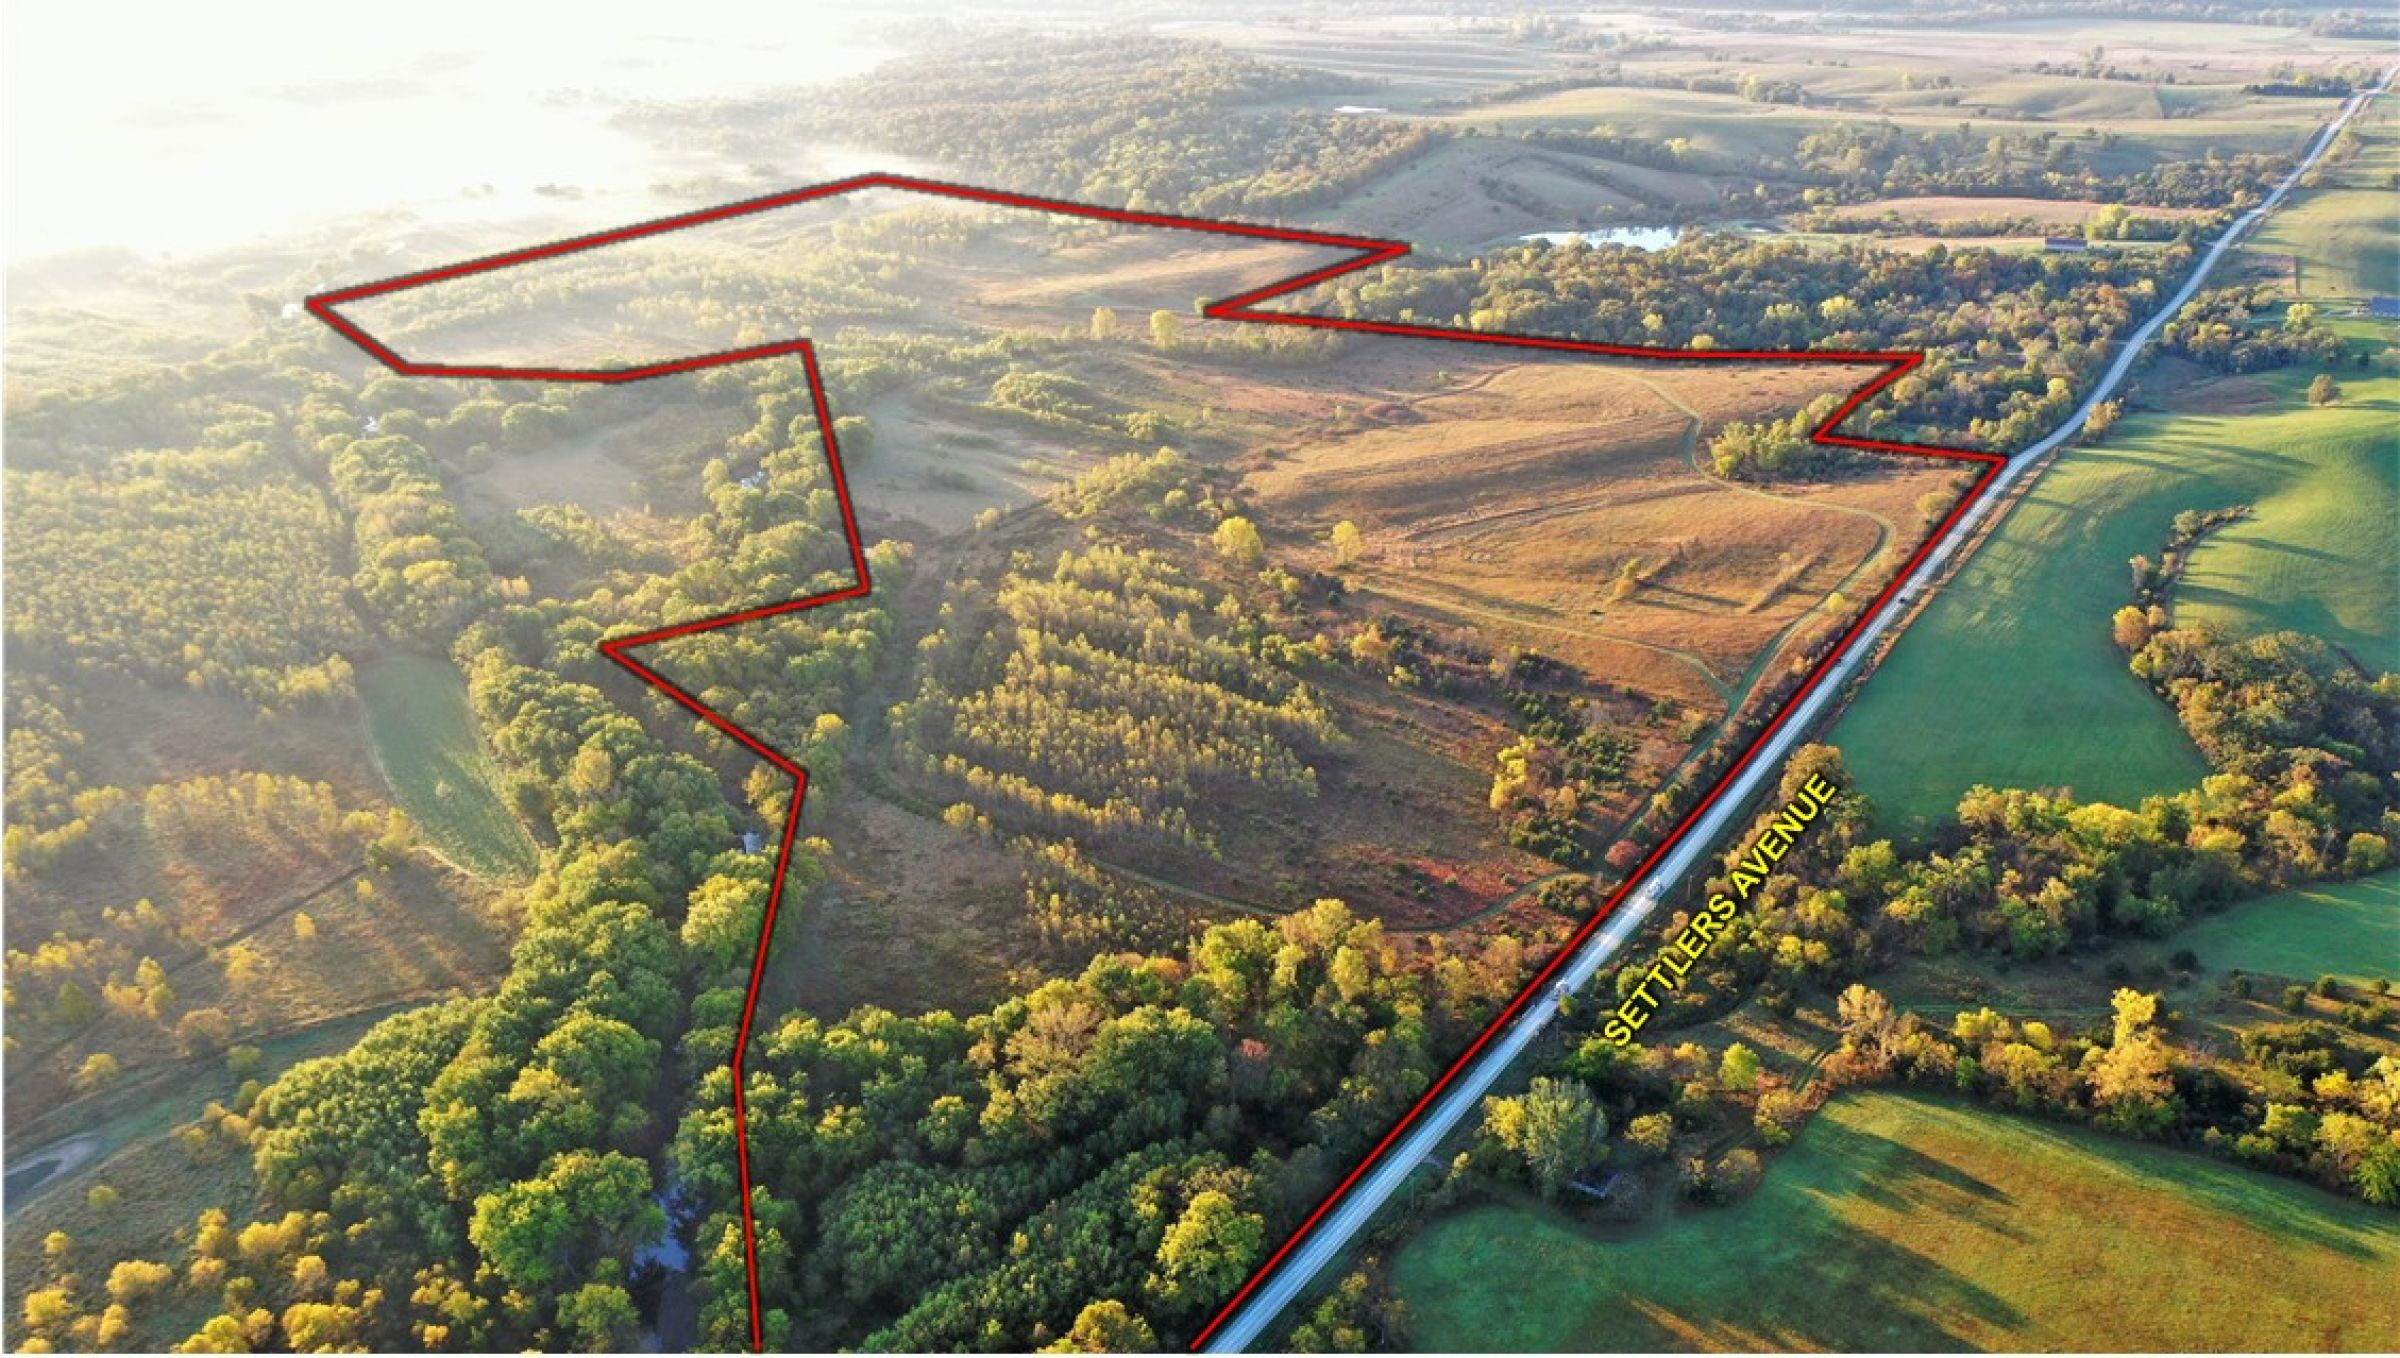 development-land-madison-county-iowa-149-acres-listing-number-15199-1-2020-10-06-151029.jpg